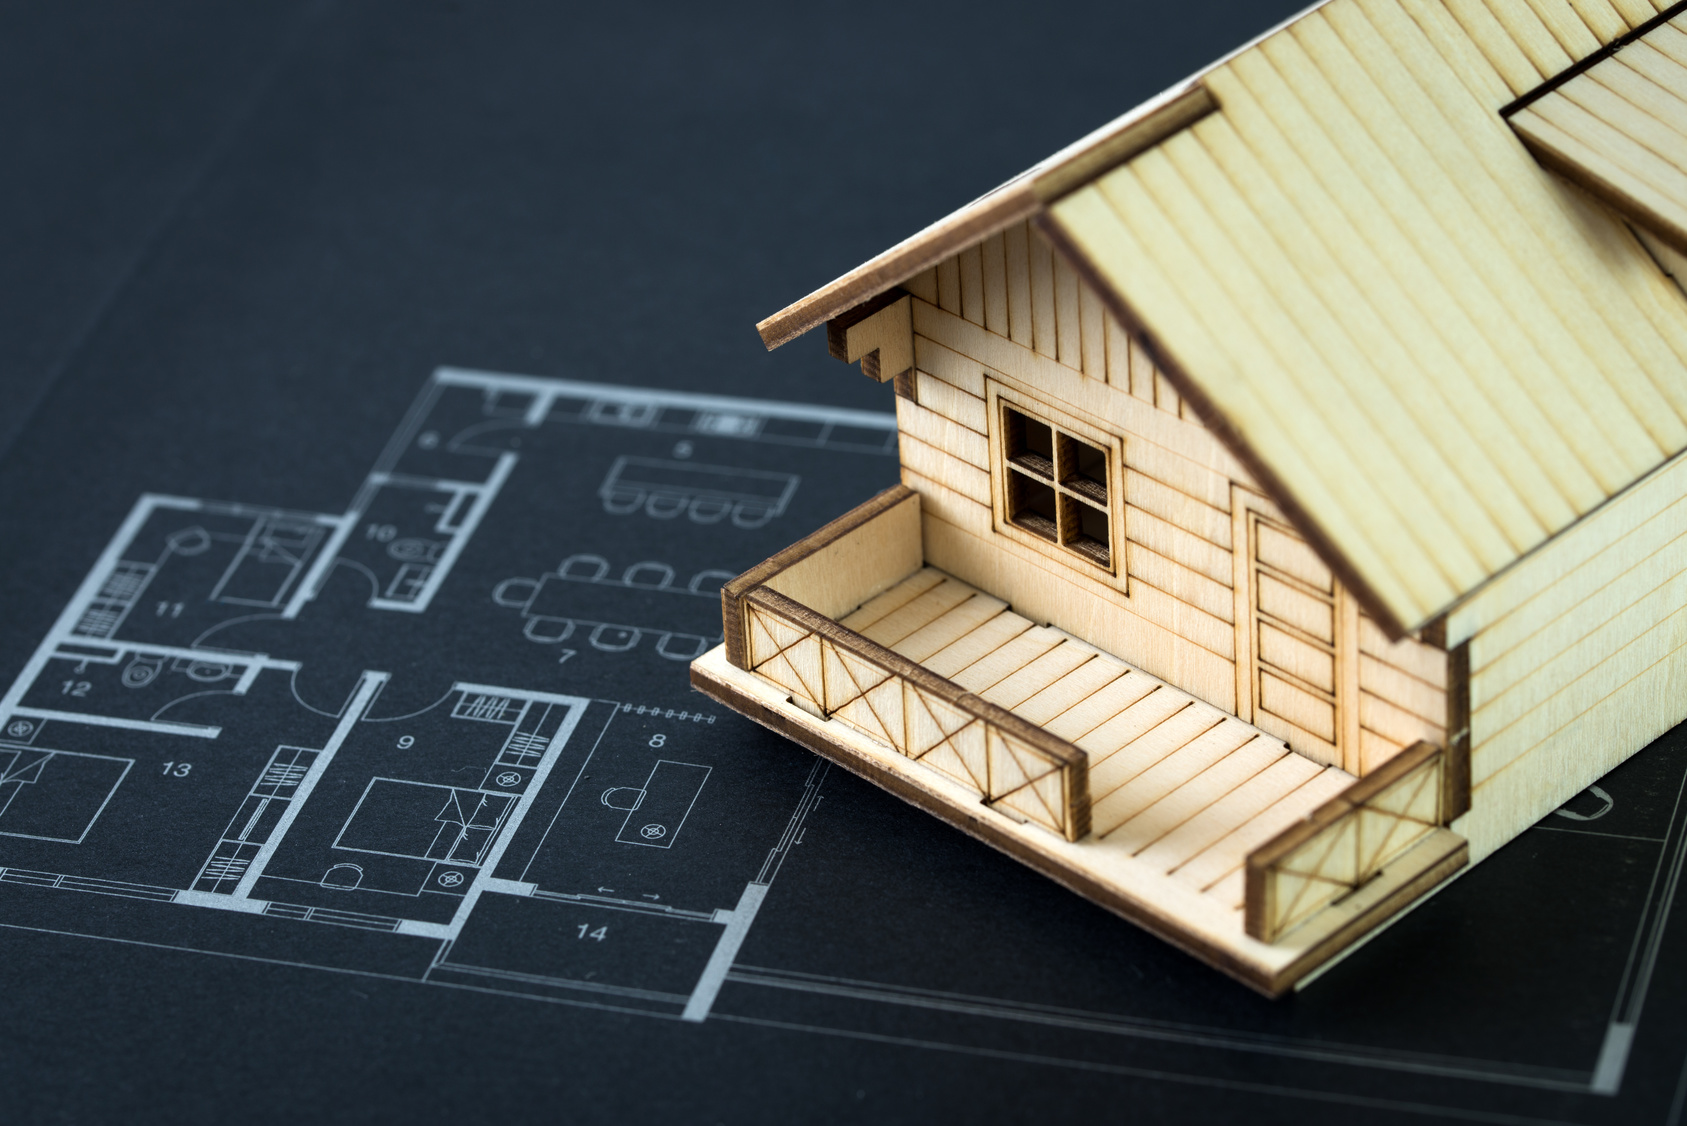 Miniature house rest on top of home blueprint